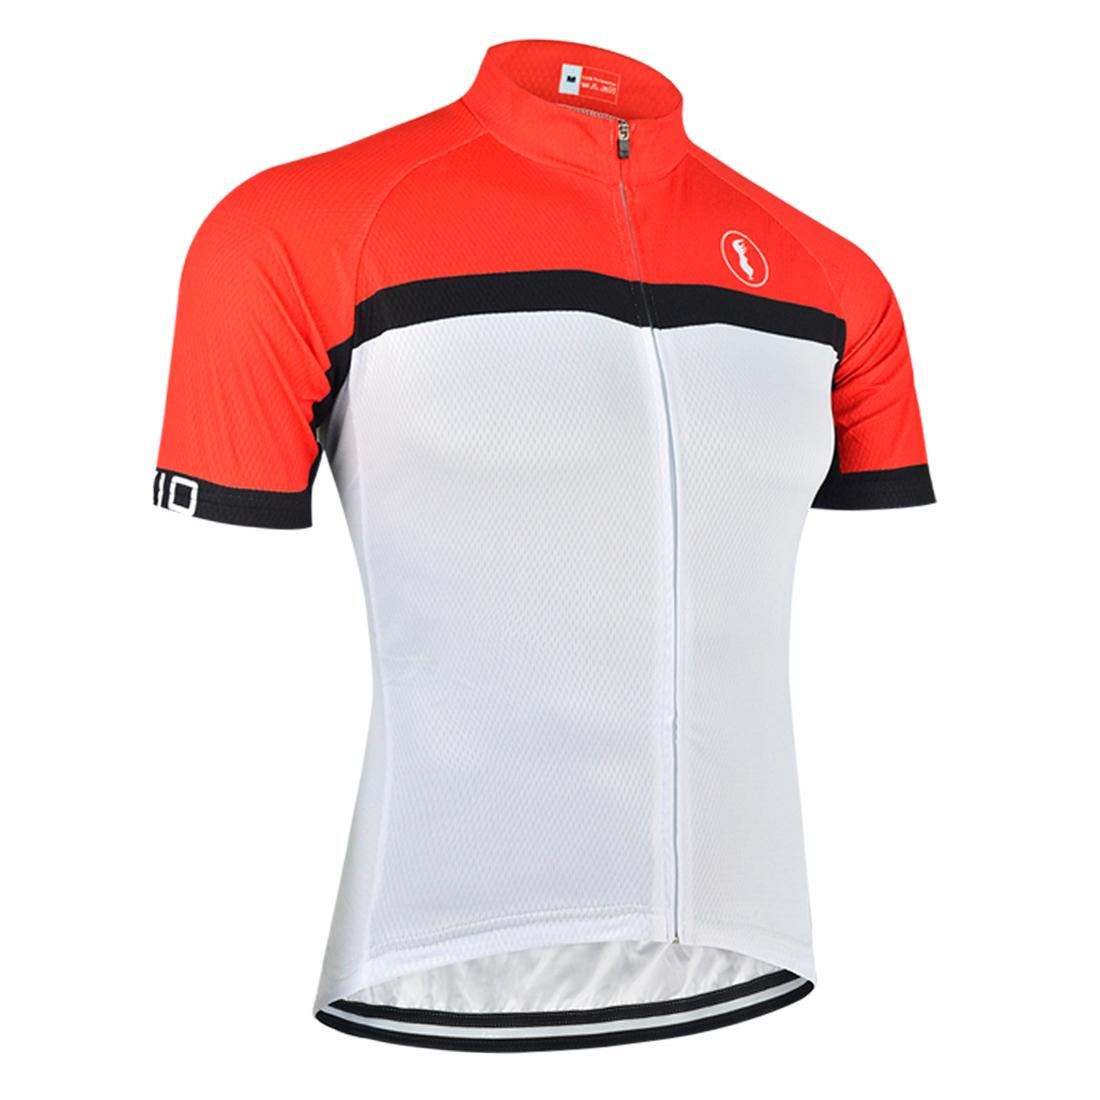 010d90096 BXIO Brand Cycling Jerseys New Only Bikes Shirt Cycling Top MTB Bike Sport  Wear Clothing Bicycle Jersey Hombres Ropa Ciclismo BX 012 J Plaid Shirts  Tie Dye ...